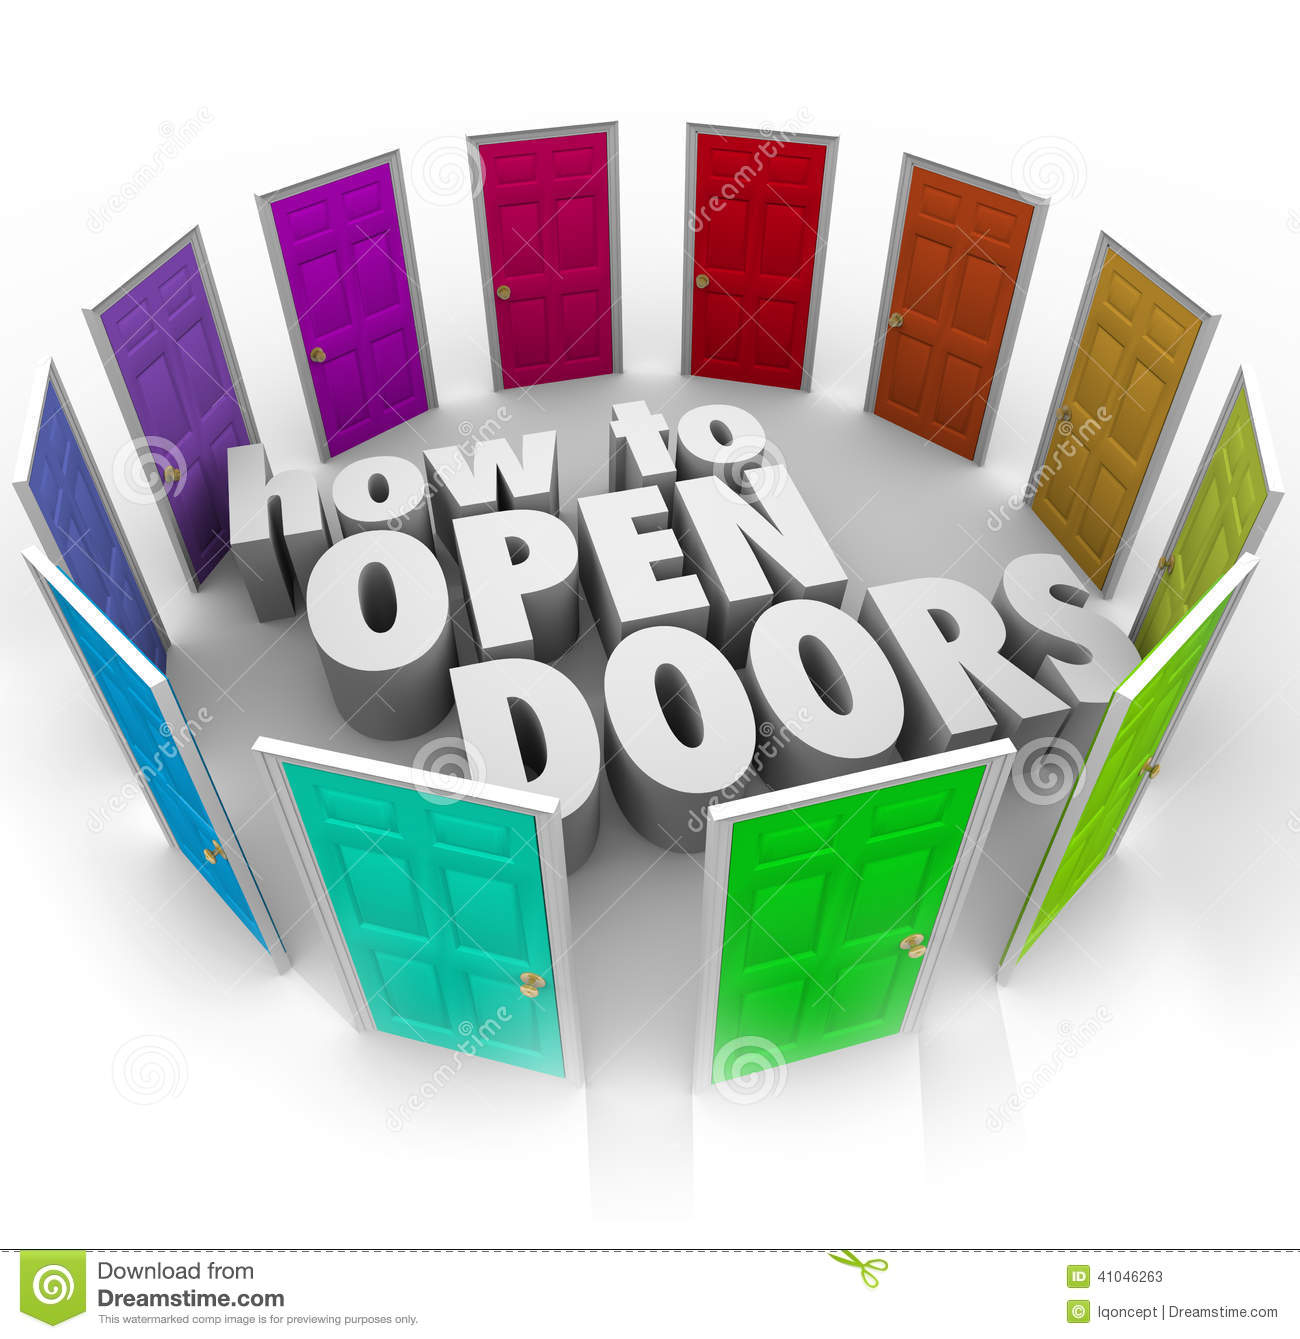 How To Open Doors Words Opportunity Entry Access New Paths Stock Illustration - Illustration of guidance. information: 41046263